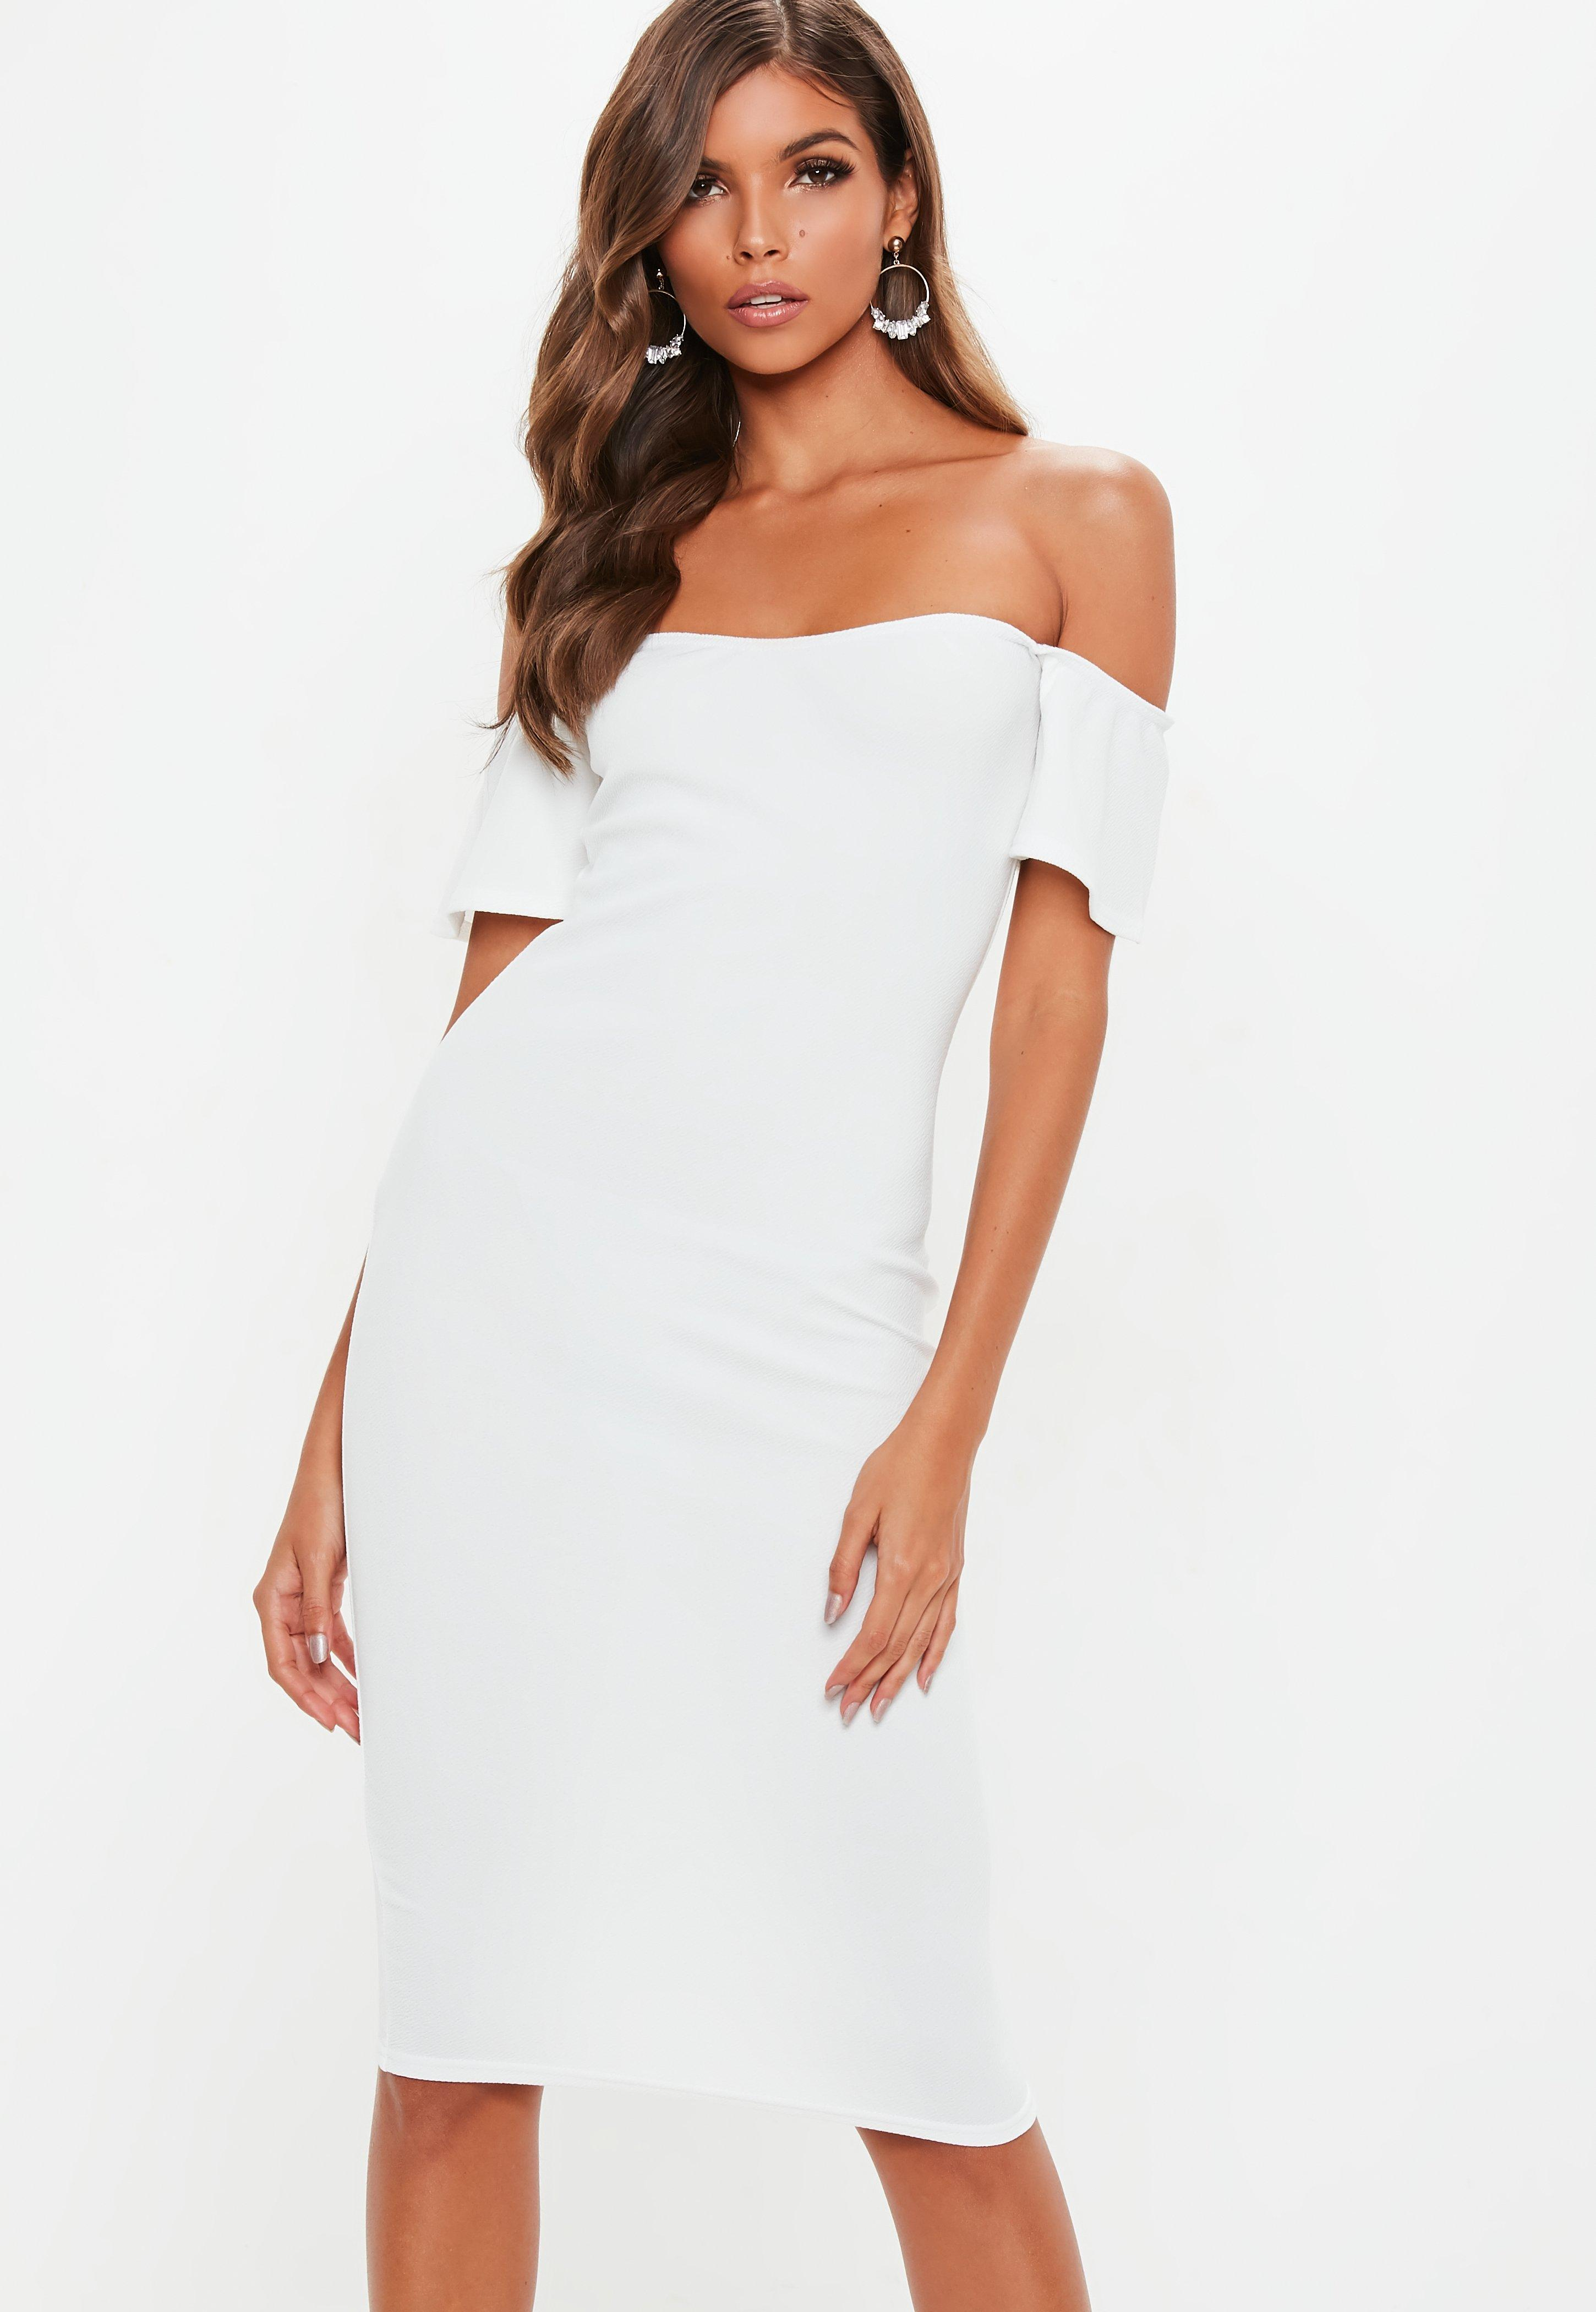 Bodycon Dresses - Tight Dresses & Fitted Dresses | Missguided